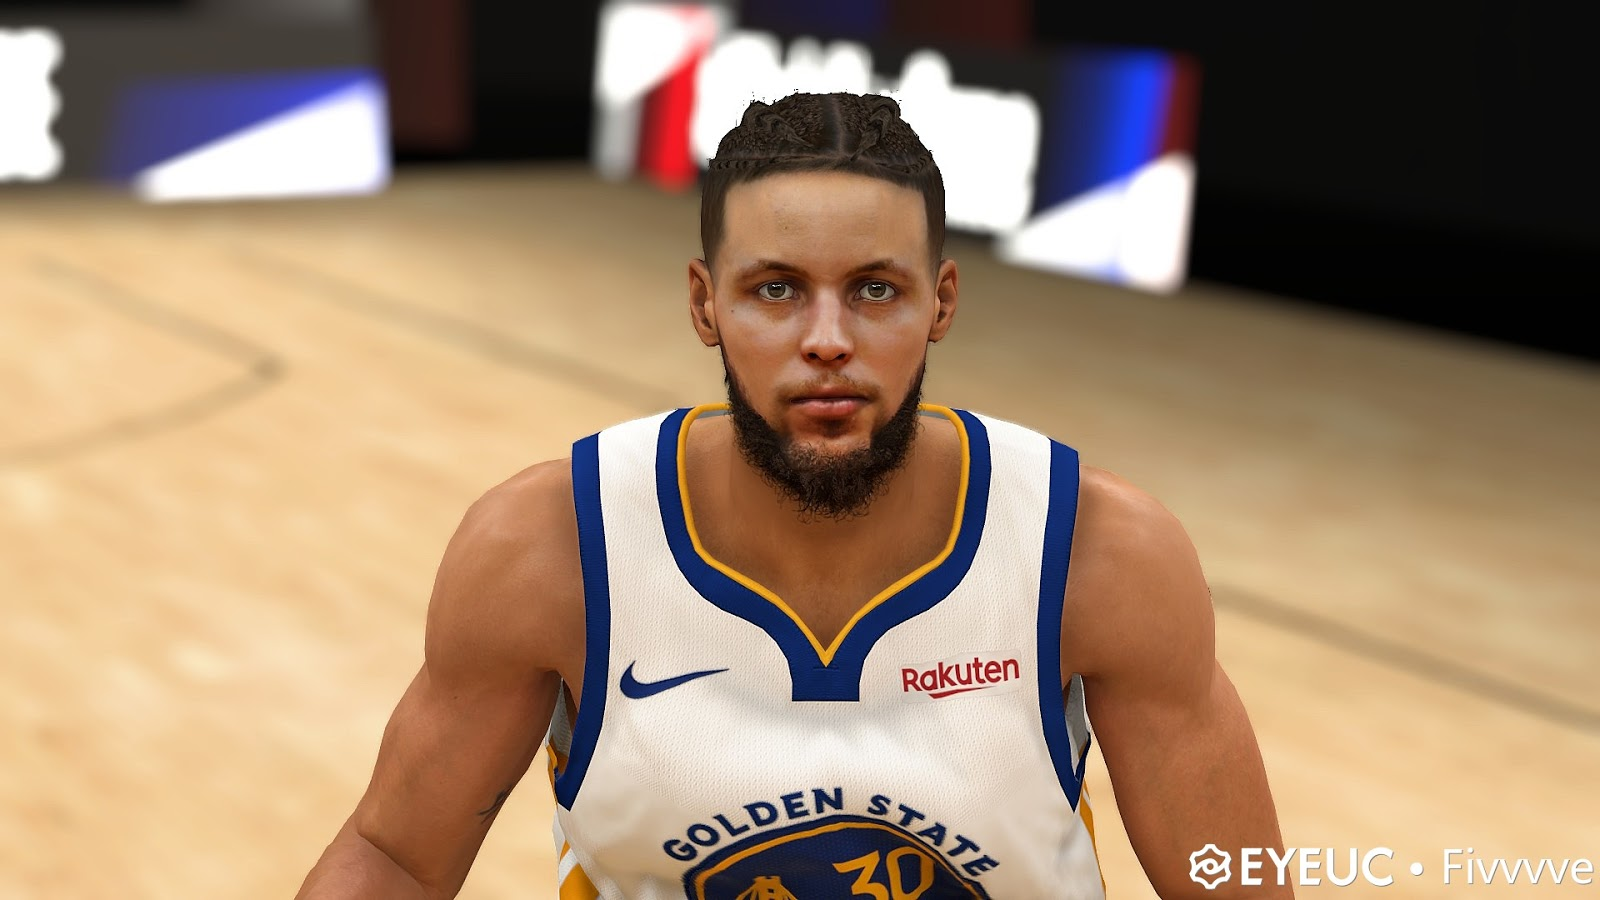 Stephen Curry Cyberface Hair Braid And Body Model V2 By Five For 2k20 Nba 2k Updates Roster Update Cyberface Etc